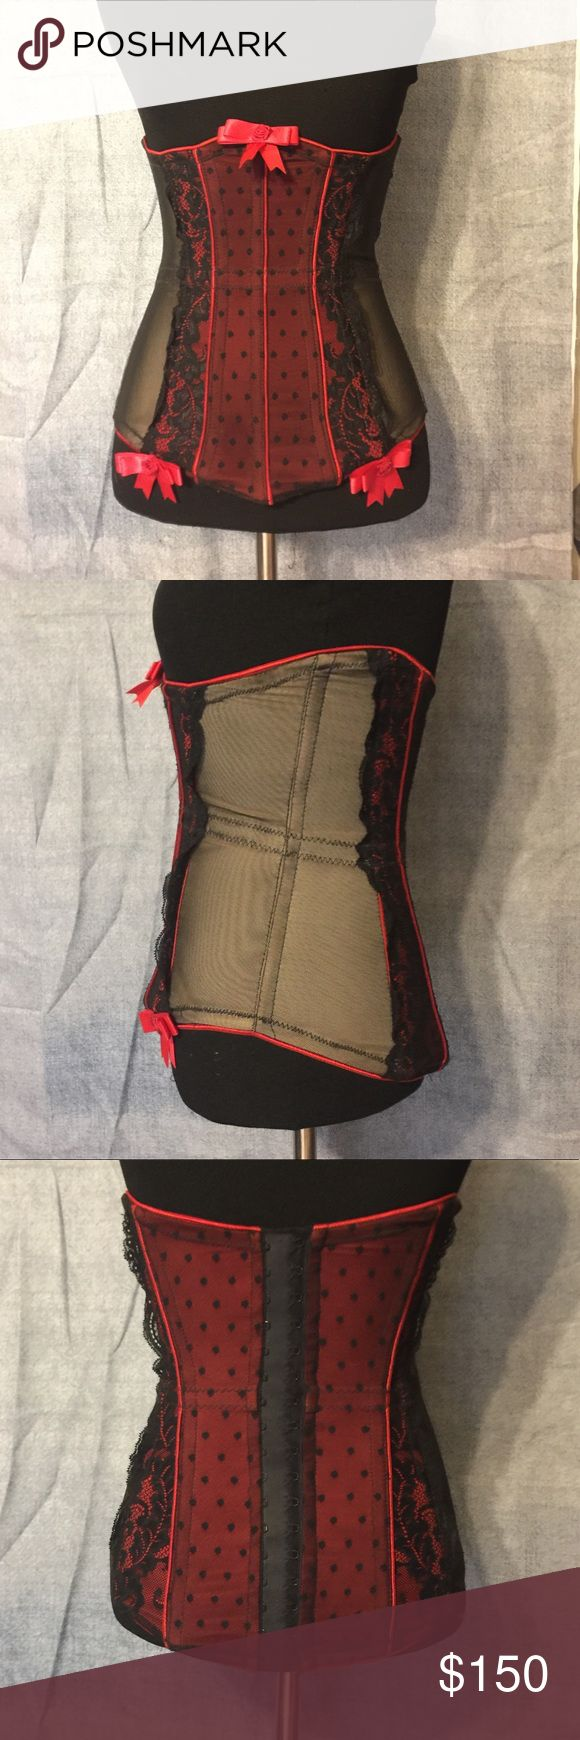 "Waist Trainer Fleurette waist trainer. Its apart of the lingerie line, ""Trashy."" I wore it once for a costume party. Still in PERFECT shape. It was purchased at a local novelty store. The tag says S but it runs small. I'm a size 0 and it fits to a T. I paid $300 for it-it is now $225 online. I'm asking 150 OBO. Make an offer 🙂 trashy Intimates & Sleepwear Shapewear"